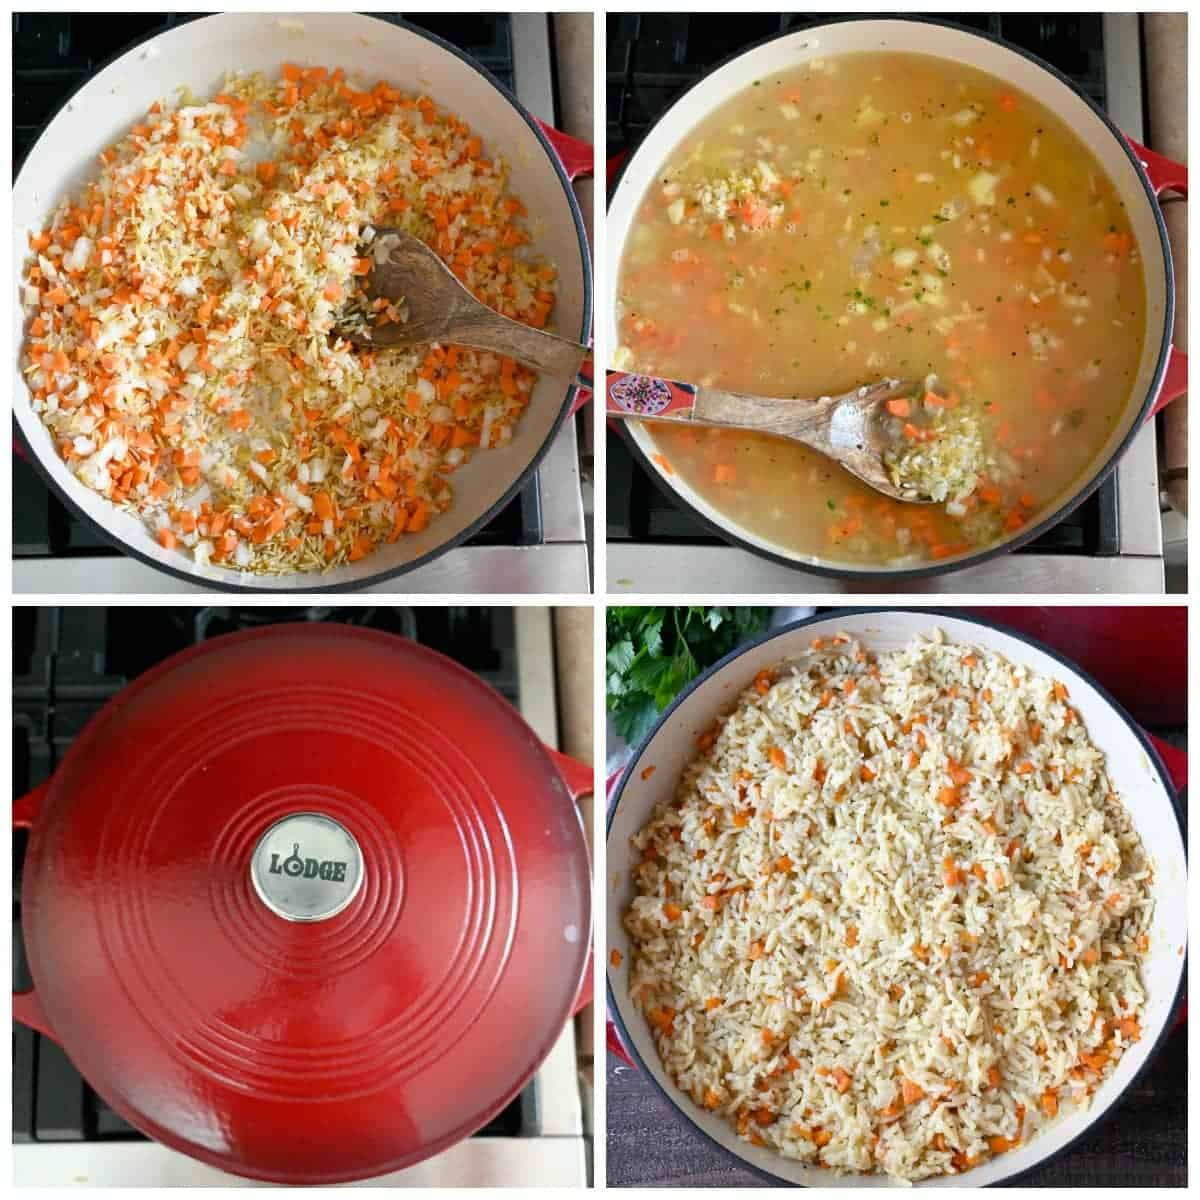 Four process photos. First one, veggies sauteed in butter. Second one, chicken stock poured into the veggie mixture. Third one, red lid put on the cast iron casserole dish. Fourth one, rice pilaf that has been cooked and fluffed with a fork.